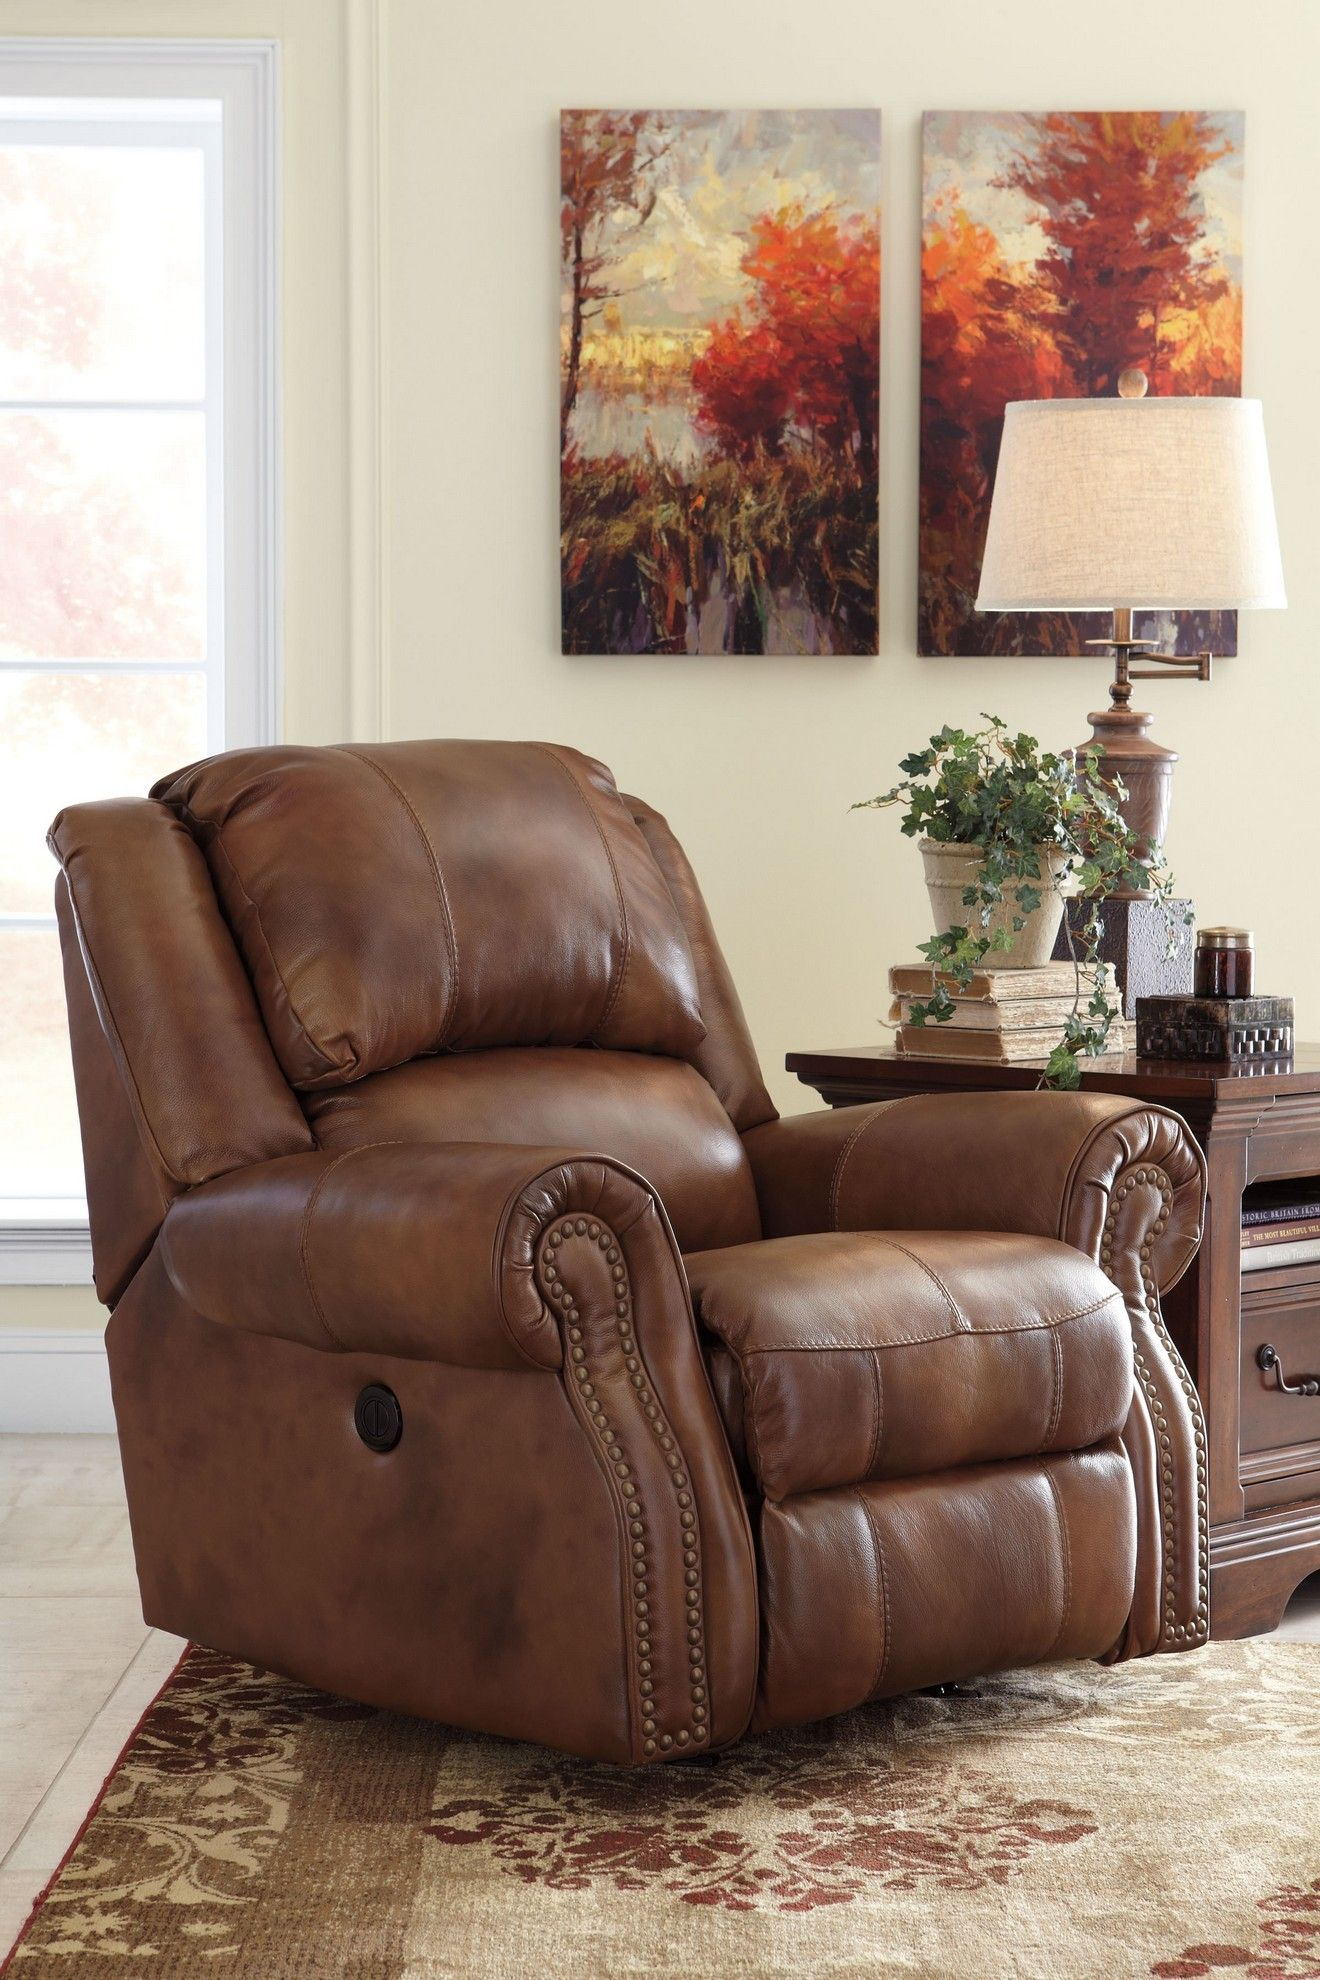 Ashley Furniture Recliner Chairs Walworth Power Recliner By Ashley Furniture At Kensington